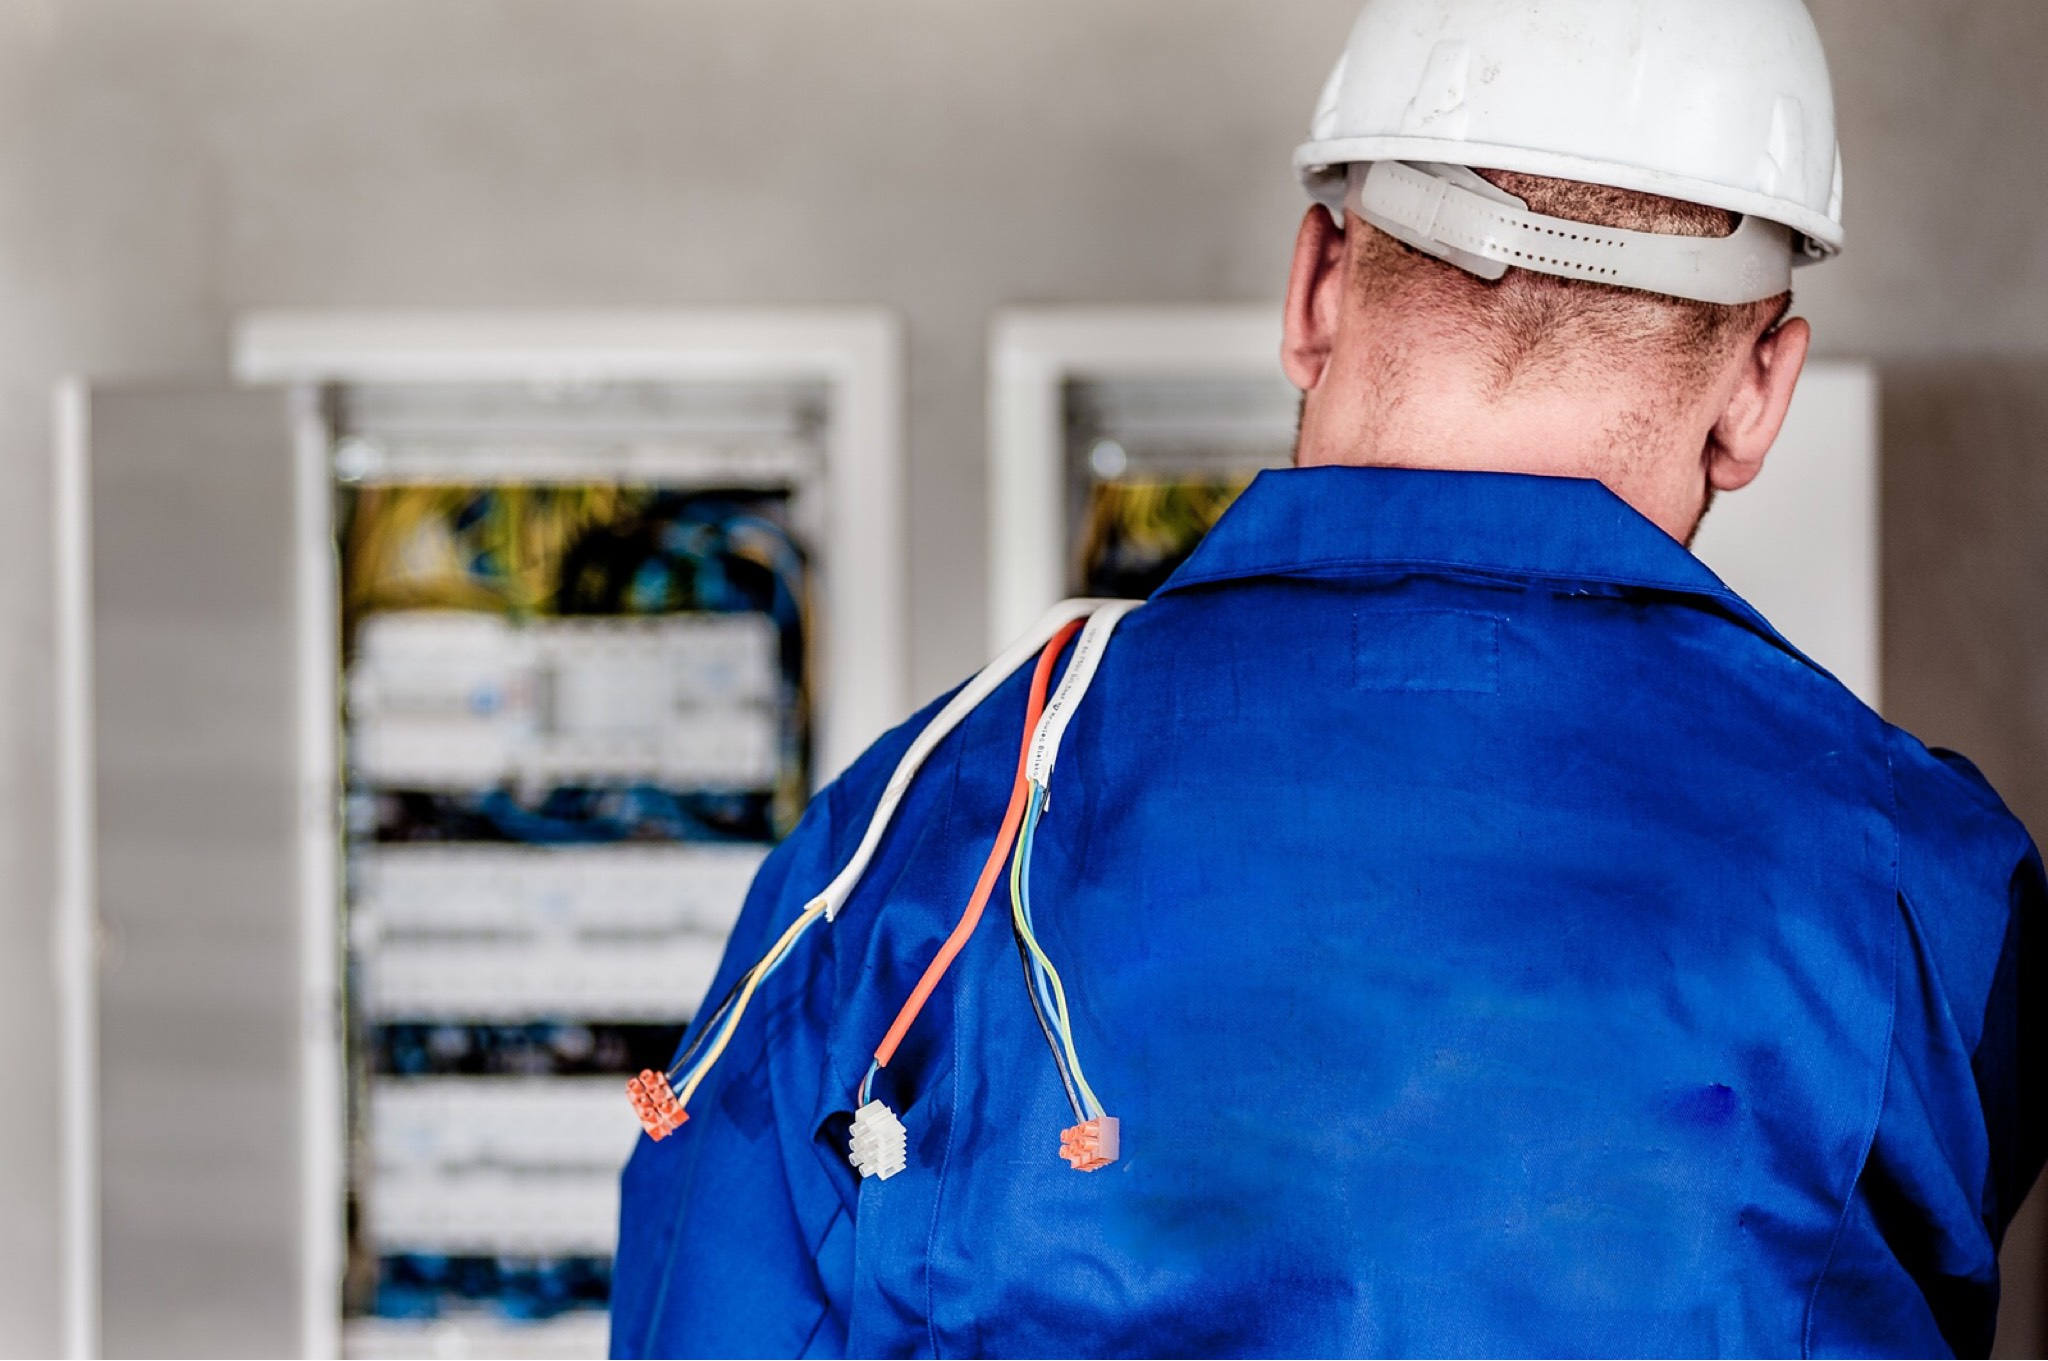 expert electricians in Kansas city